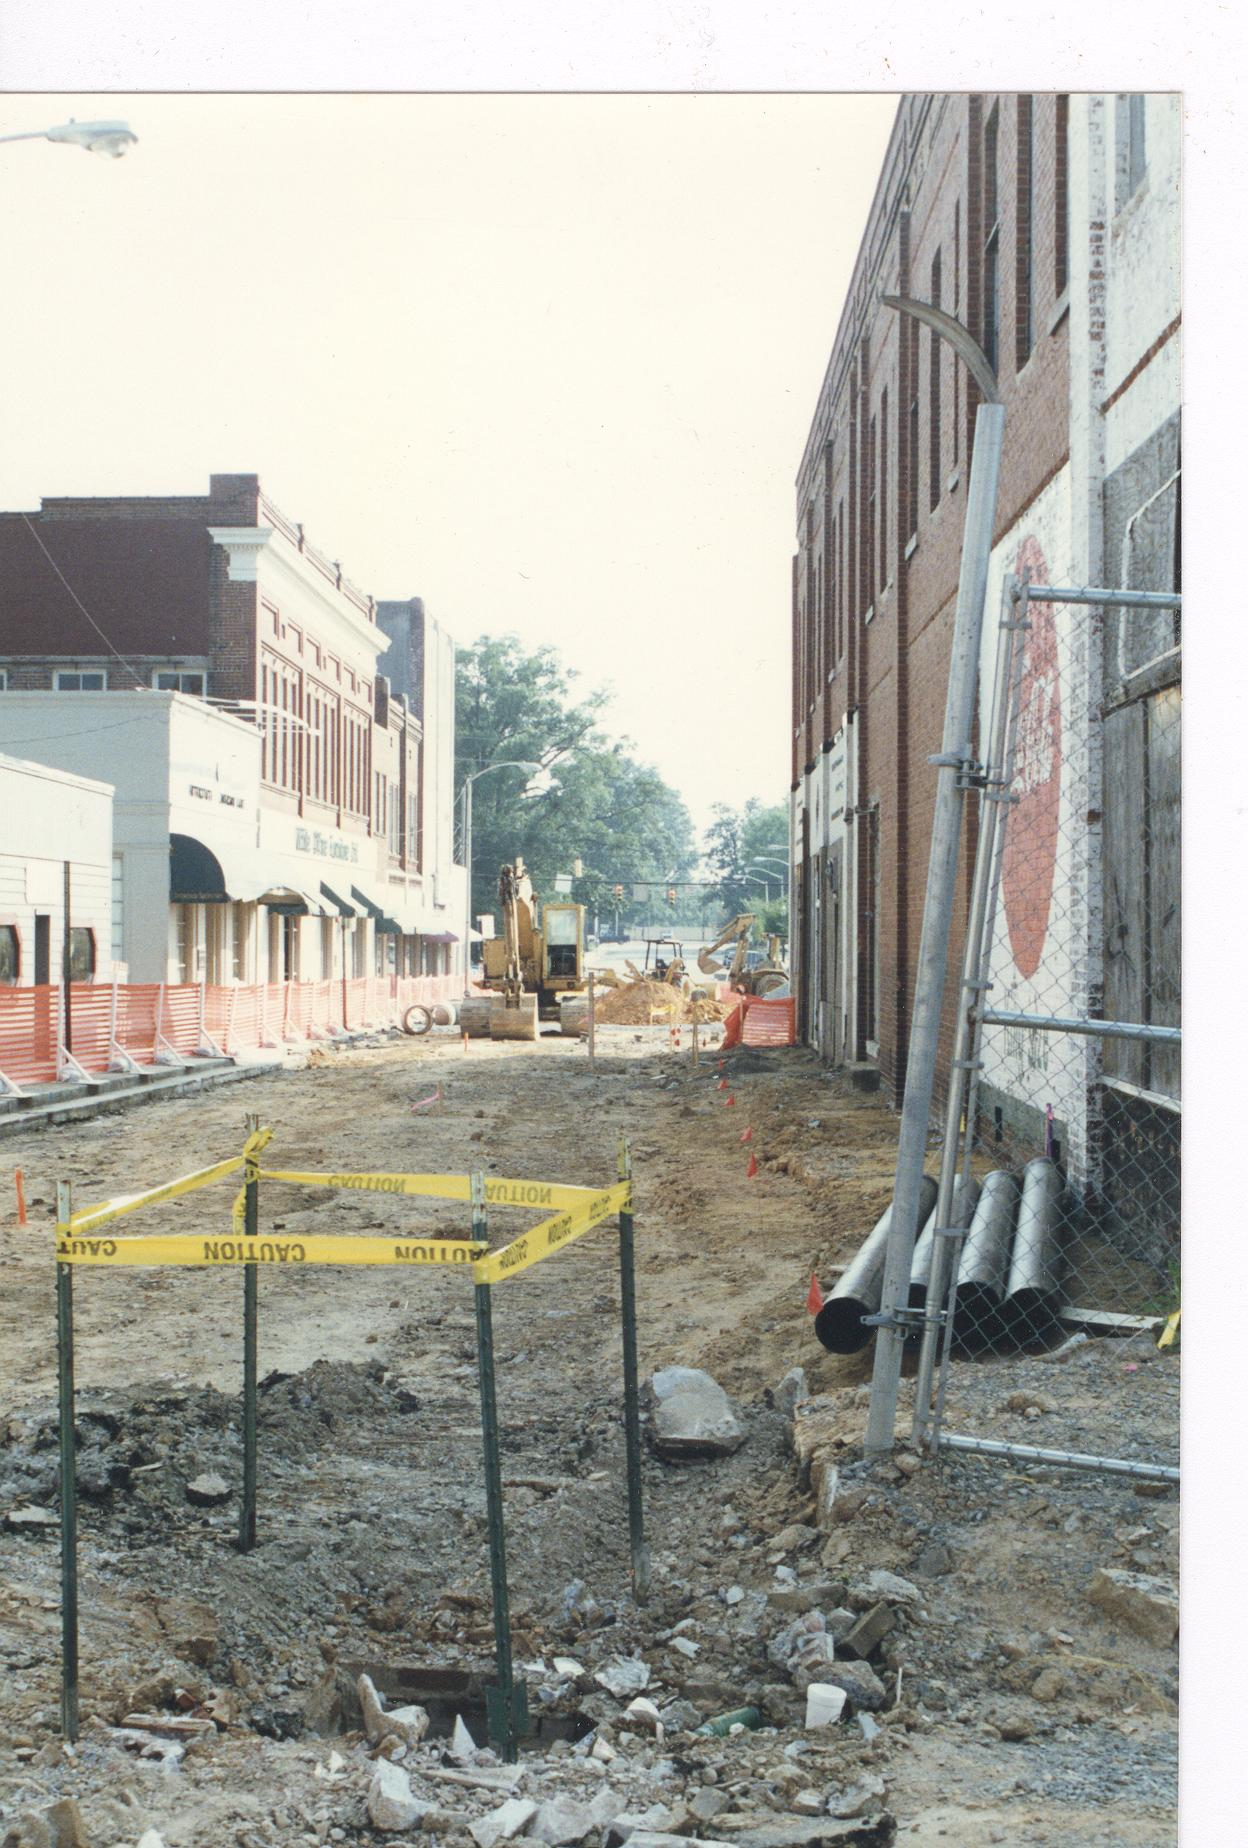 Hampton Street in ca. 1970 during urban renewal.